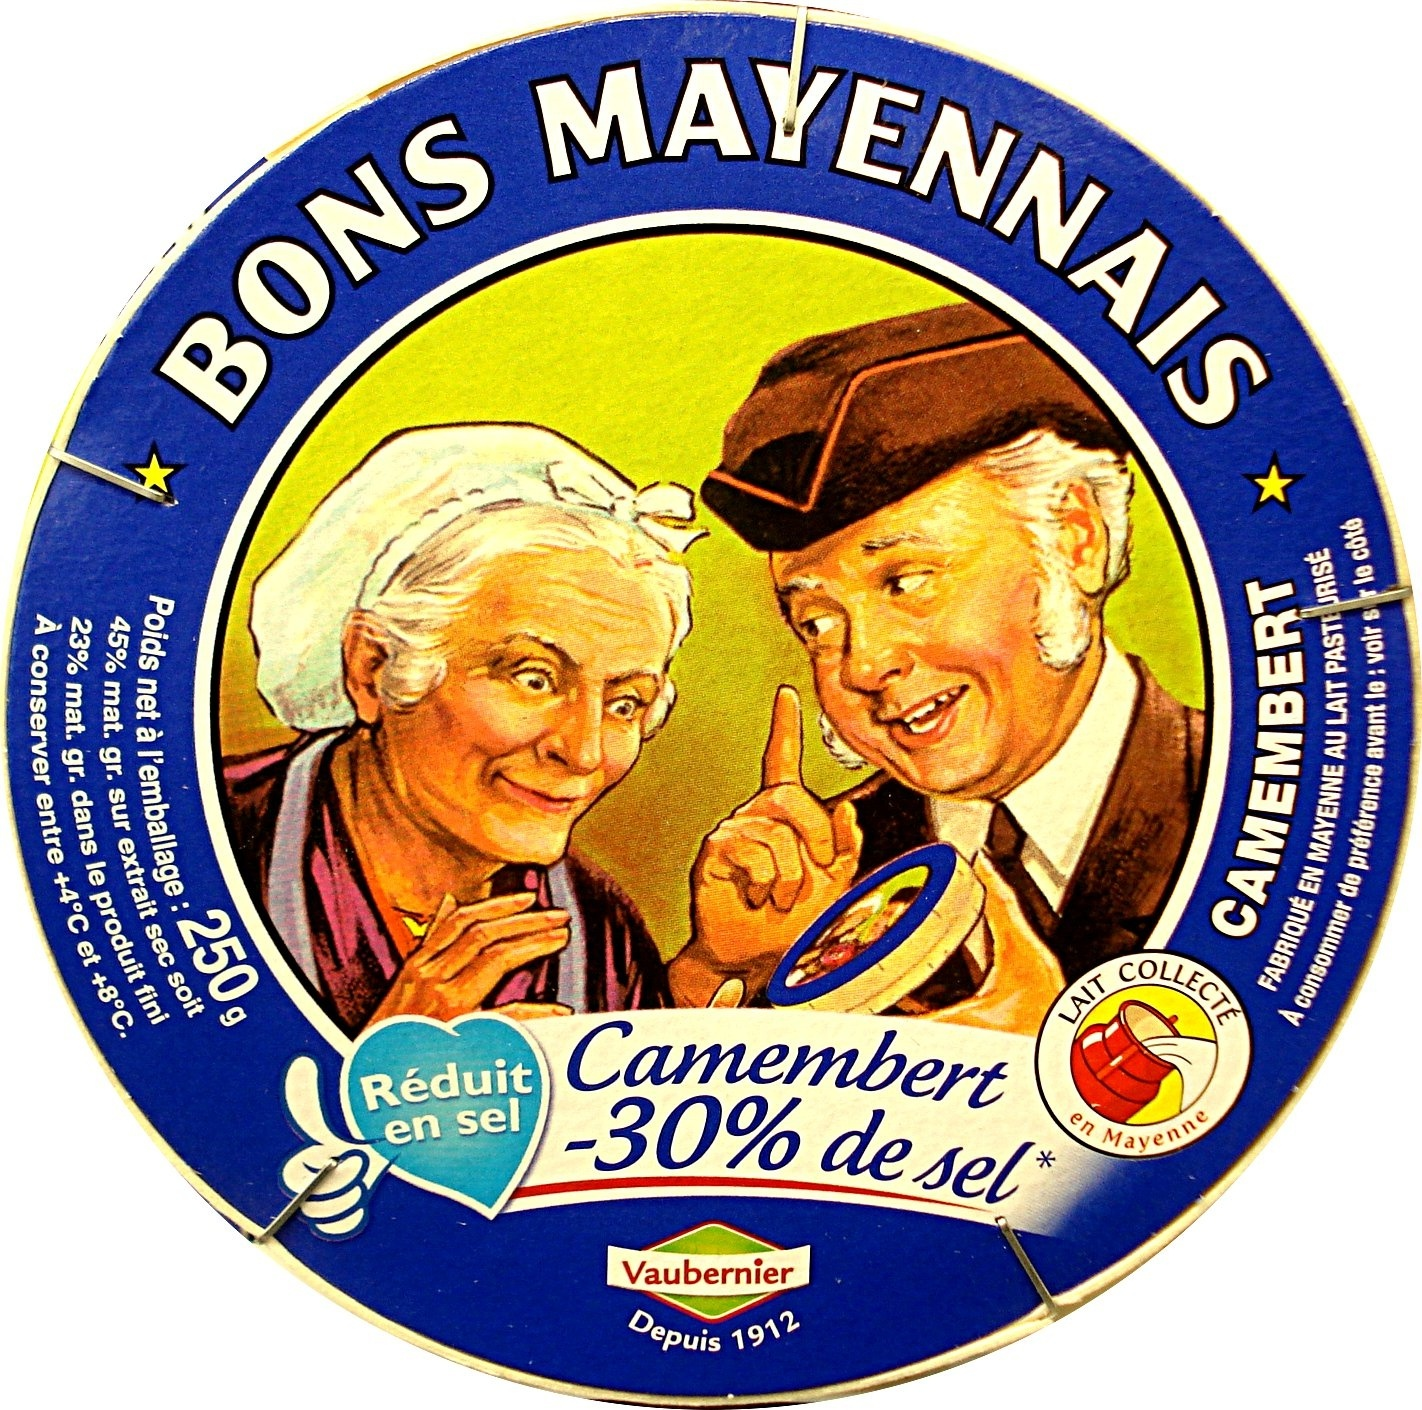 Camembert (23% MG) - 30% de sel - Product - fr